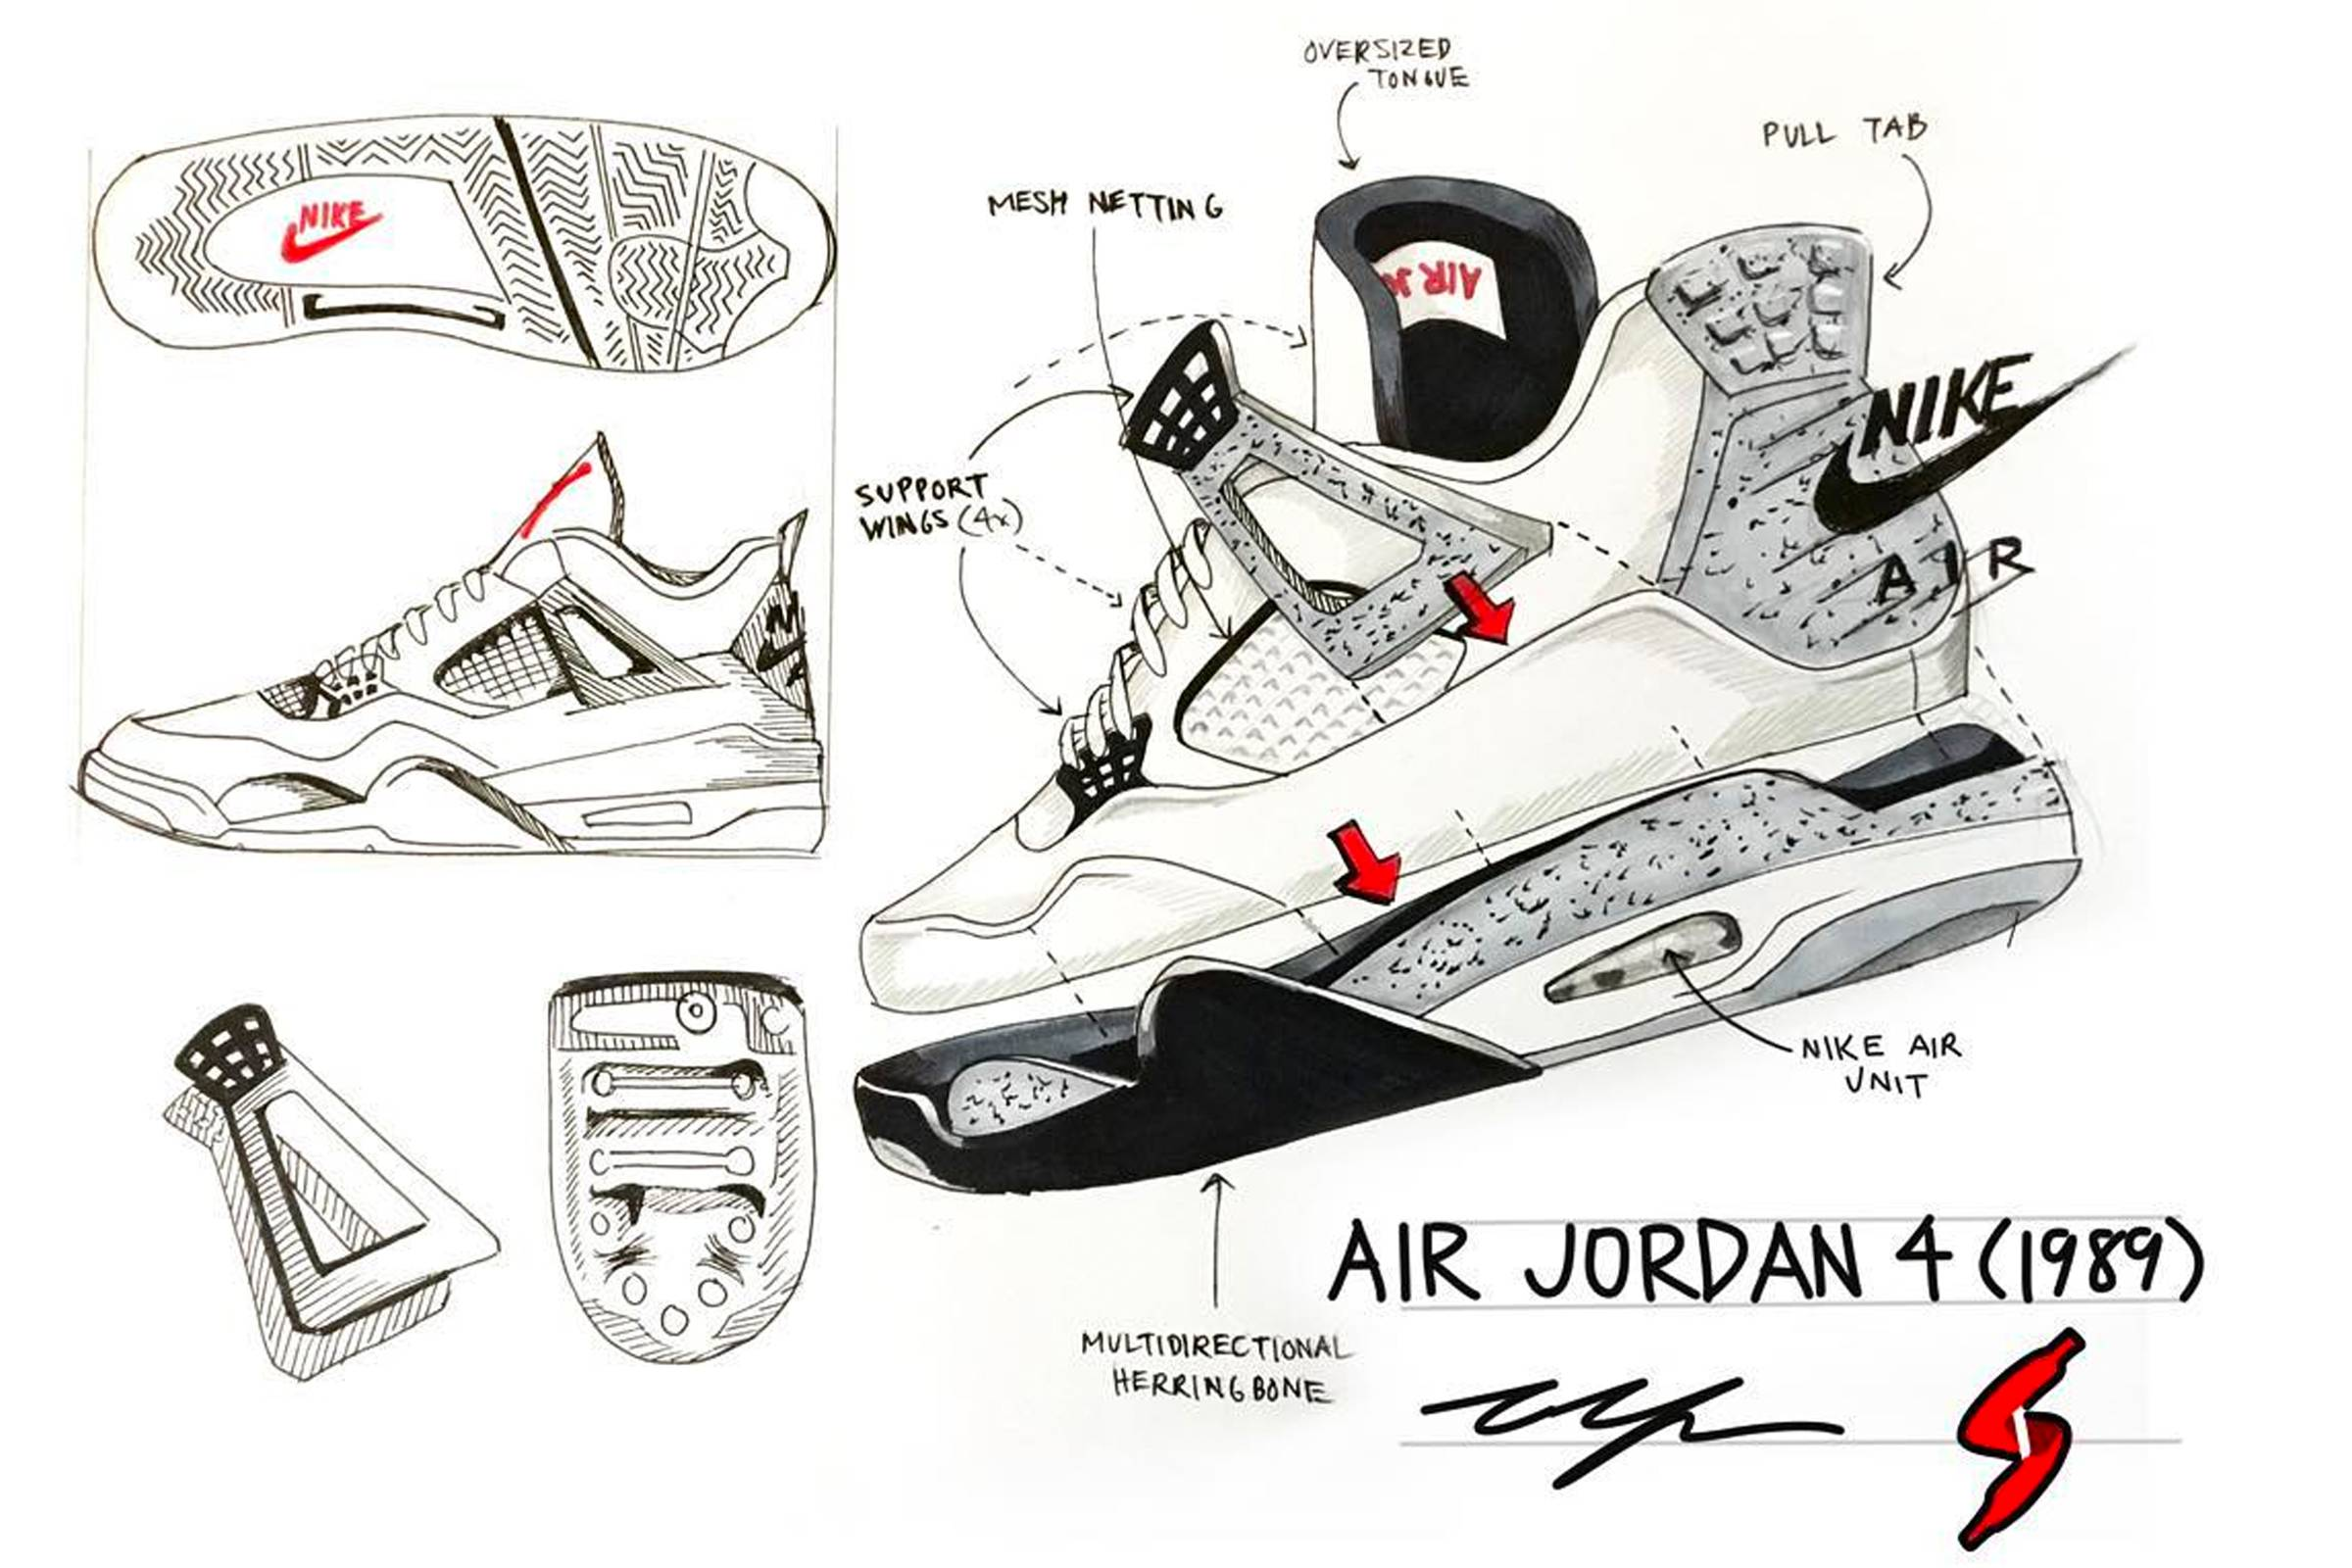 c9897af398c8 Buggin  Out  Iconic Air Jordan IV Releases - Best Air Jordan 4 ...